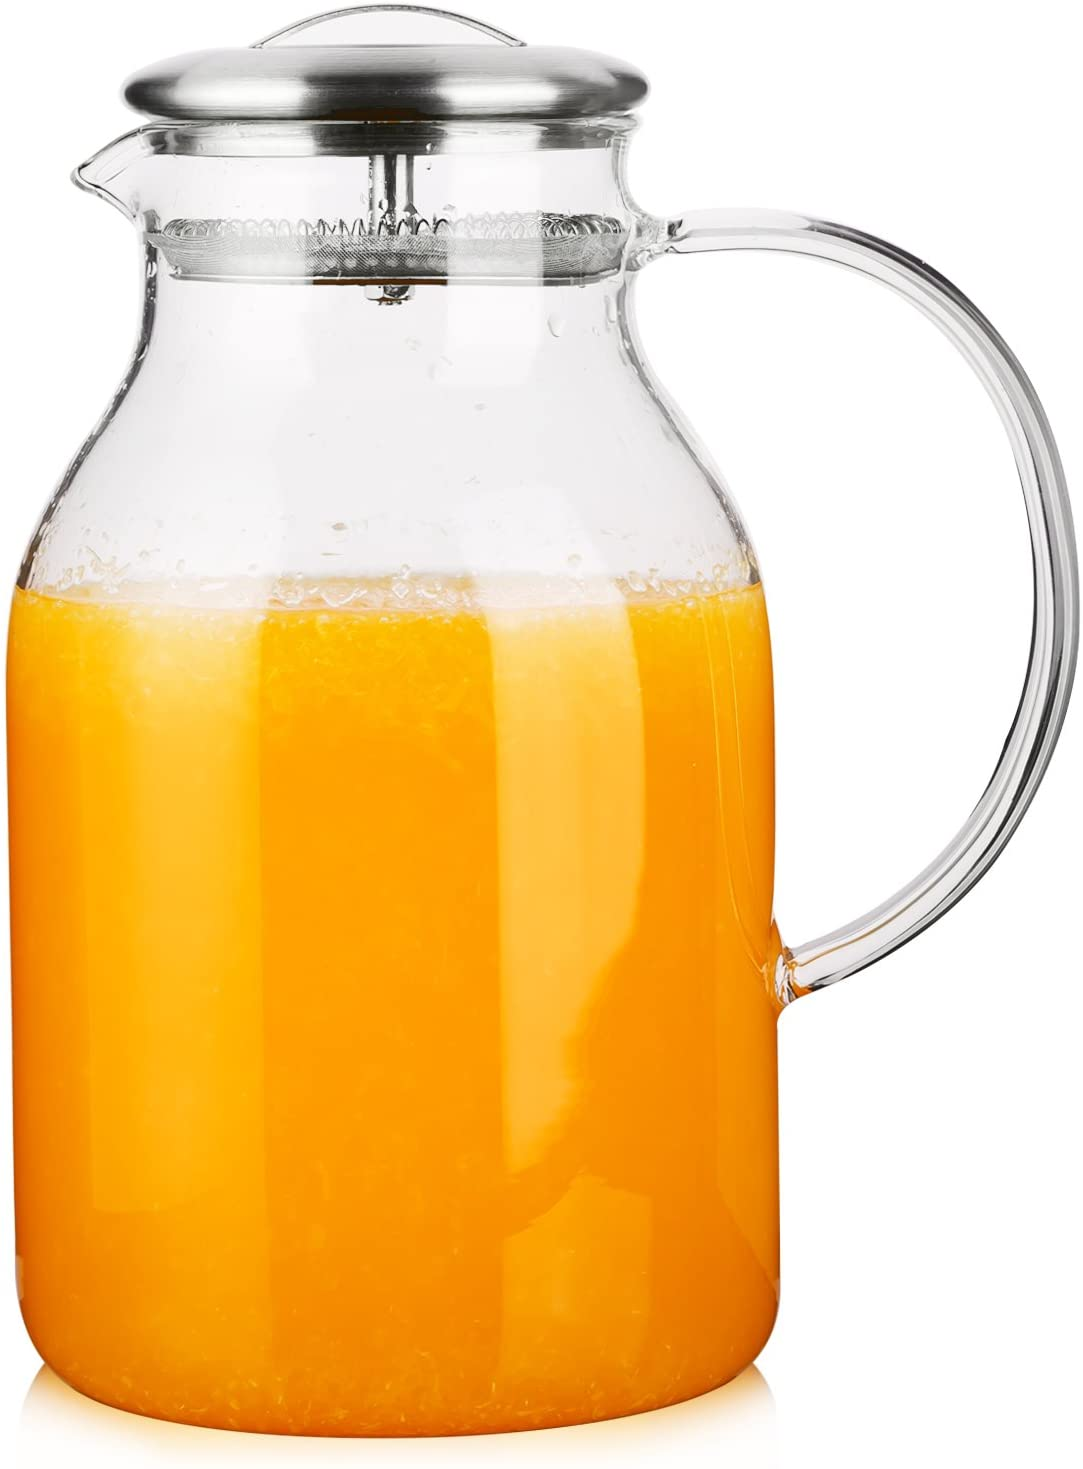 Hiware 68 Ounces Glass Pitcher with Lid and Spout - High Heat Resistance Pitcher for Hot/Cold Water & Iced Tea, Cleaning Brush Included